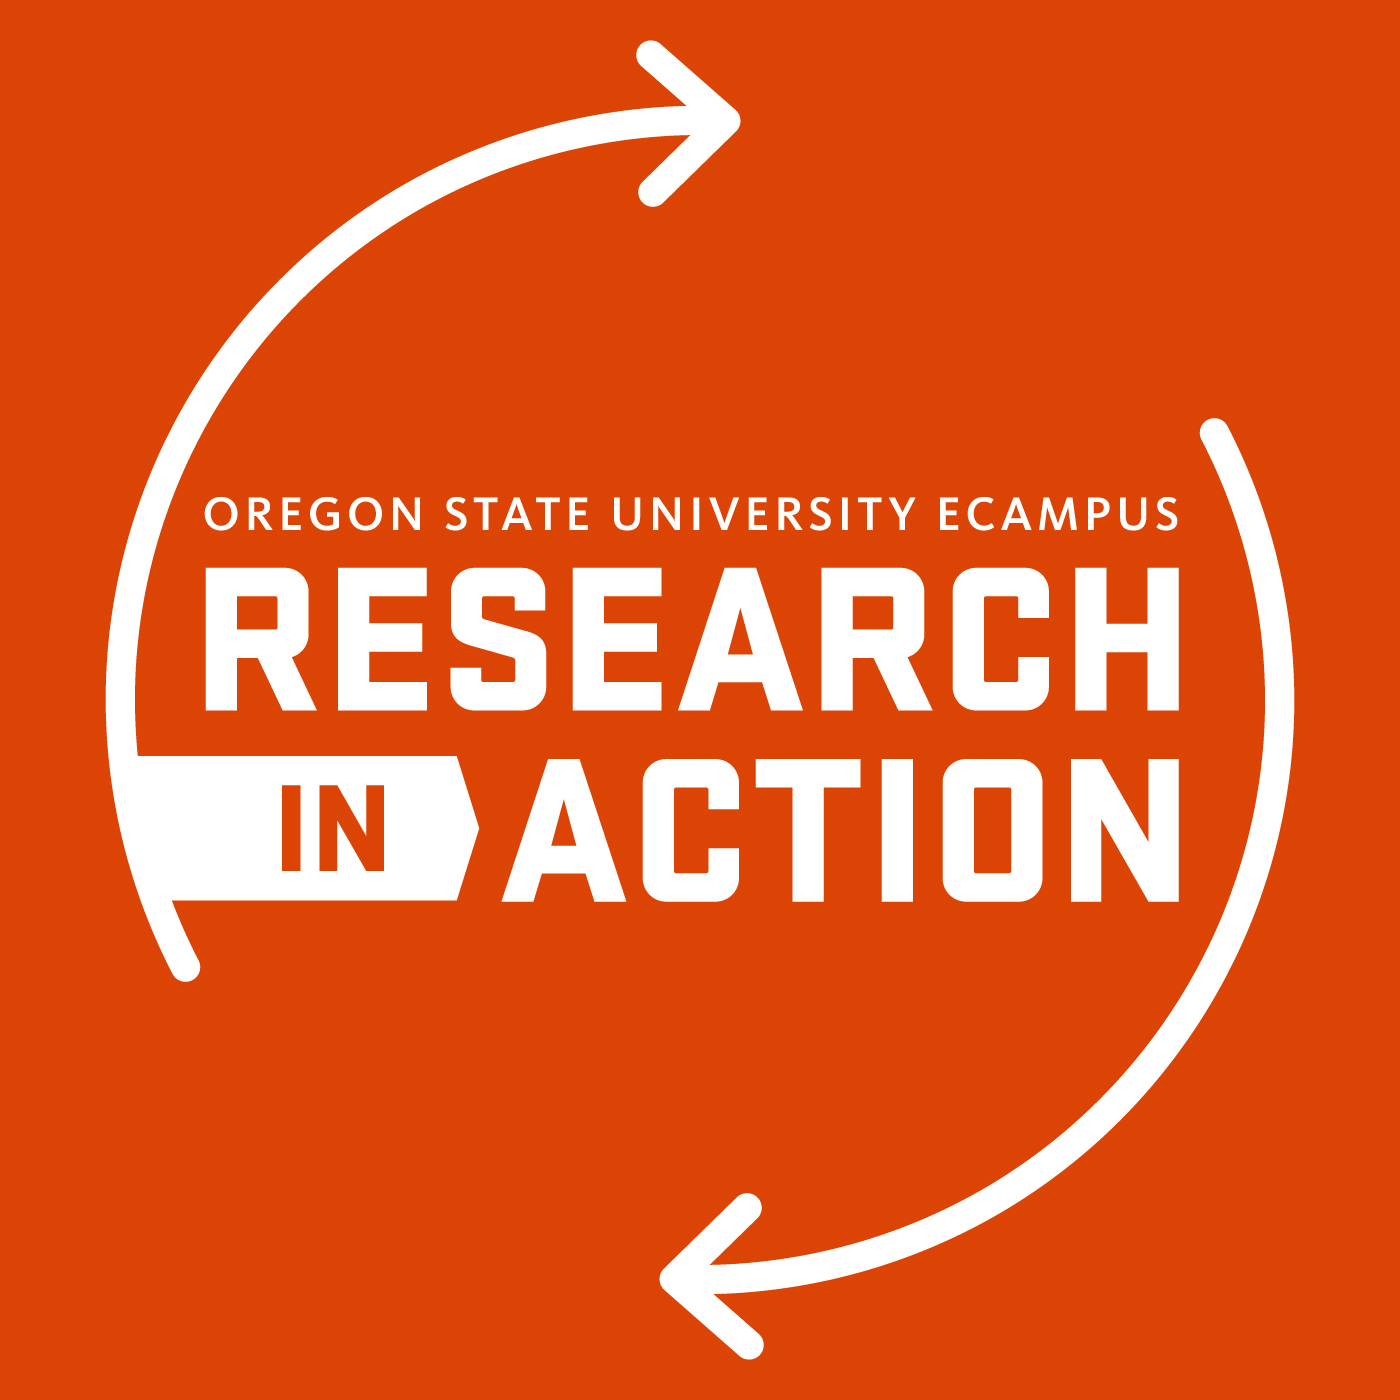 Logo: Oregon State University Ecampus Research in Action